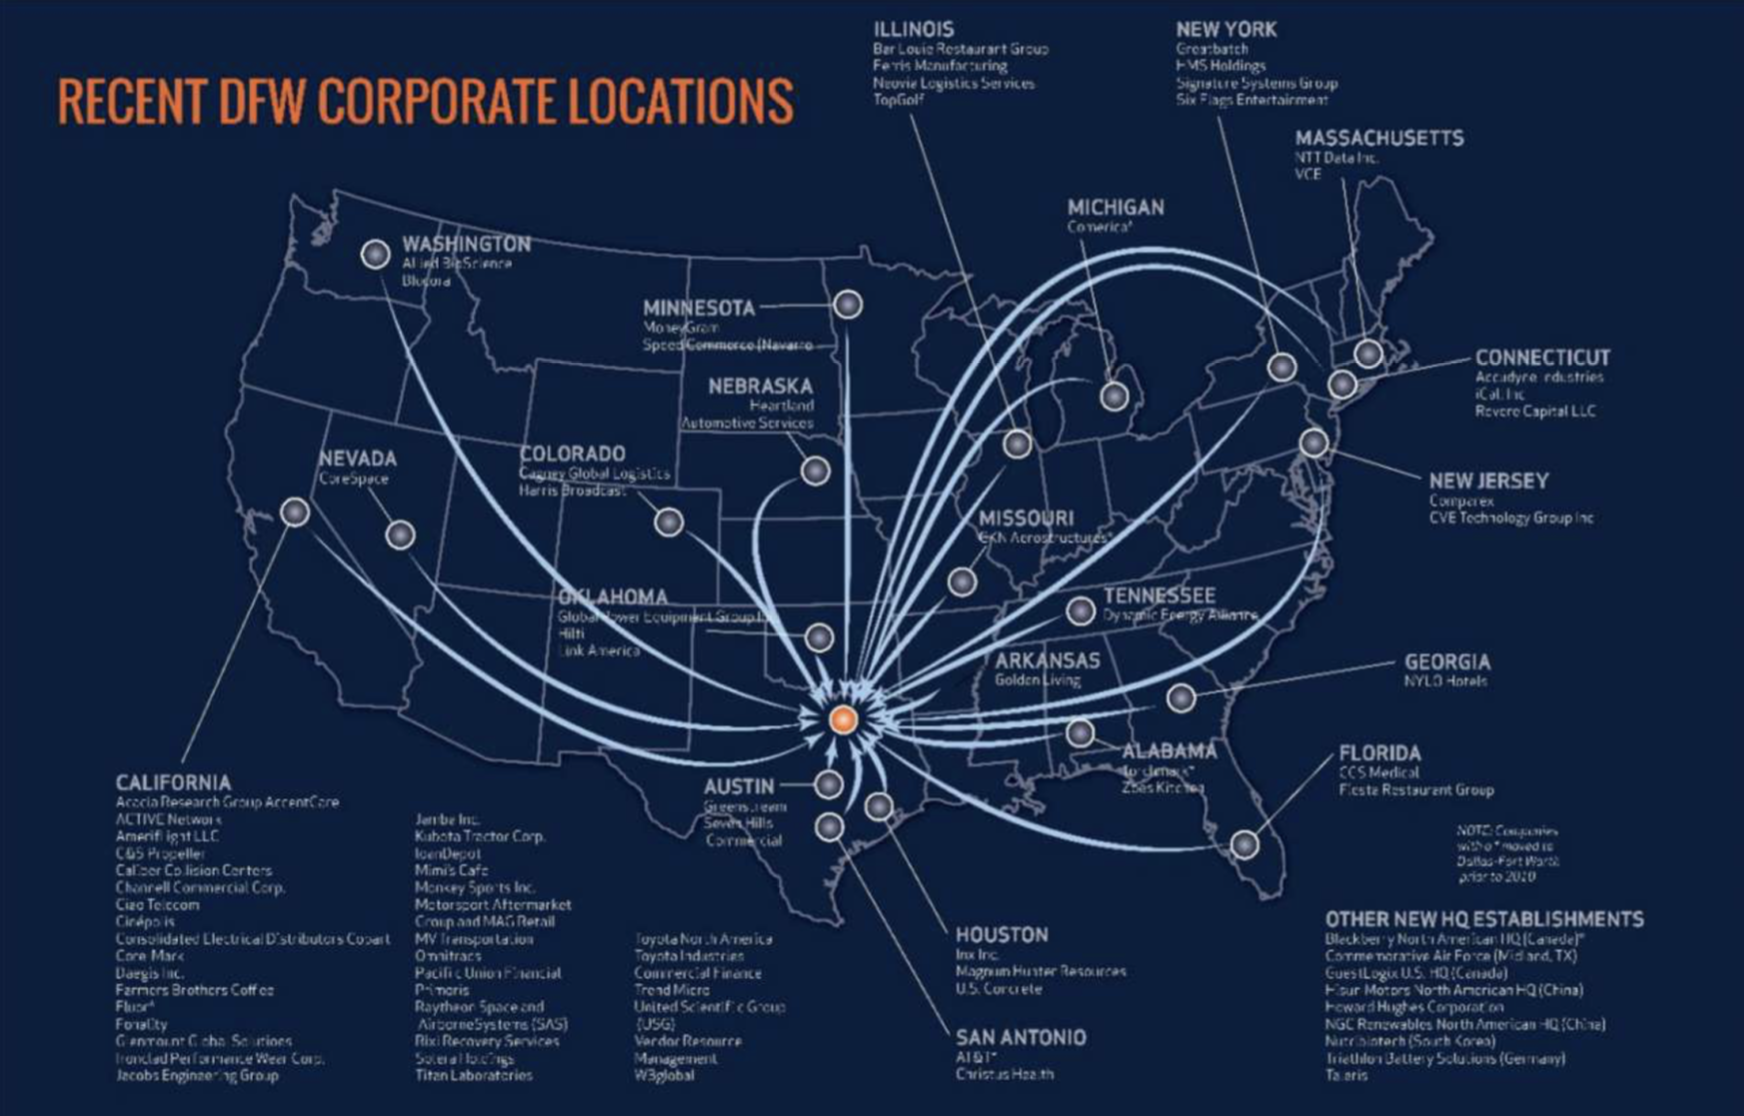 Recent DFW Corporate Relocations